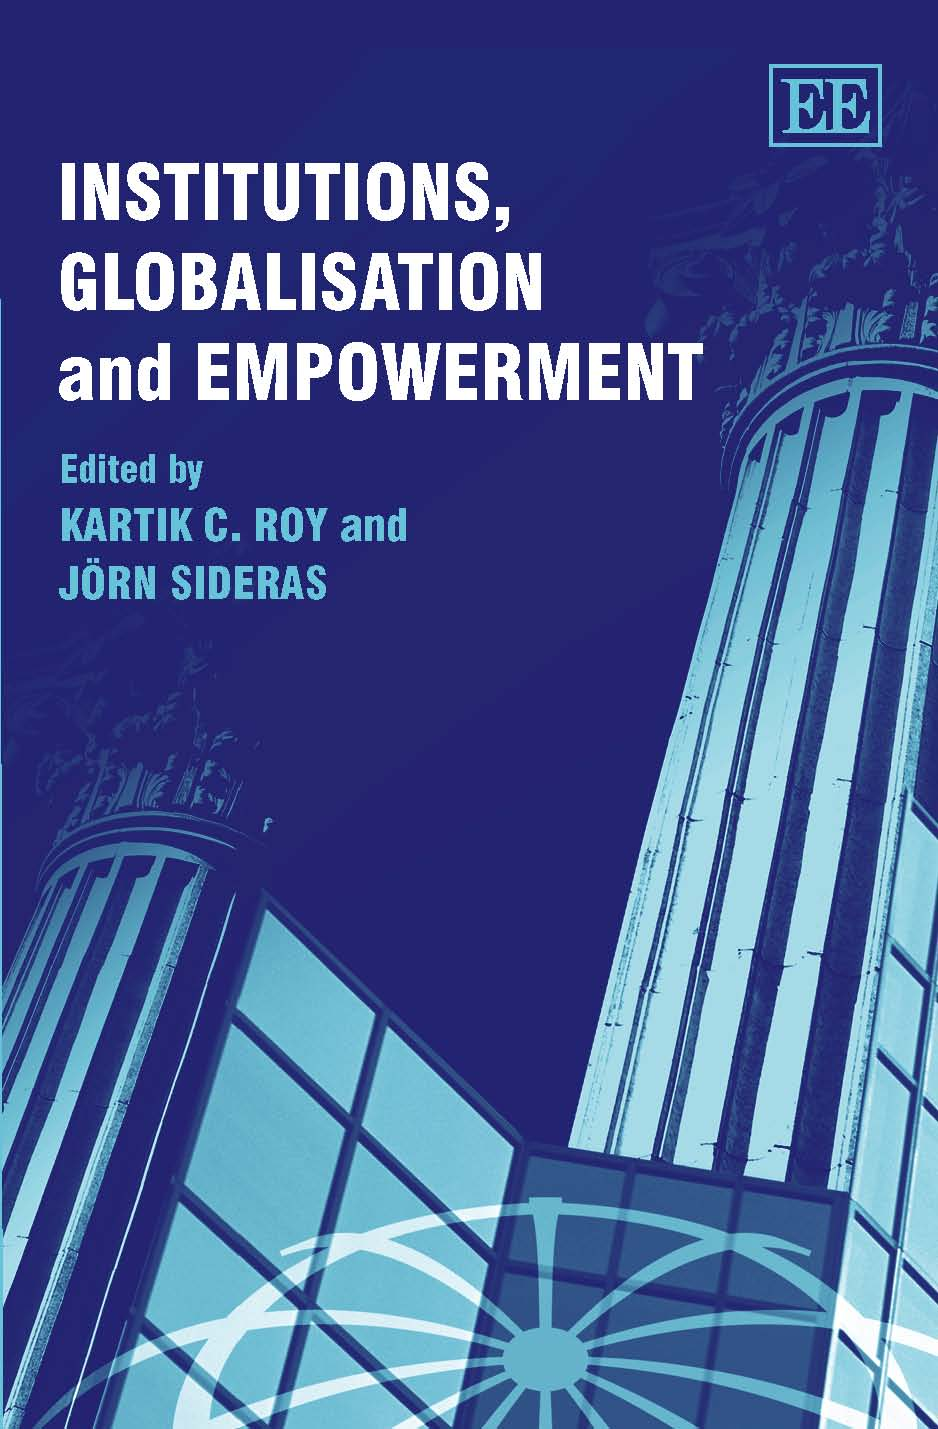 Institutions, Globalisation and Empowerment